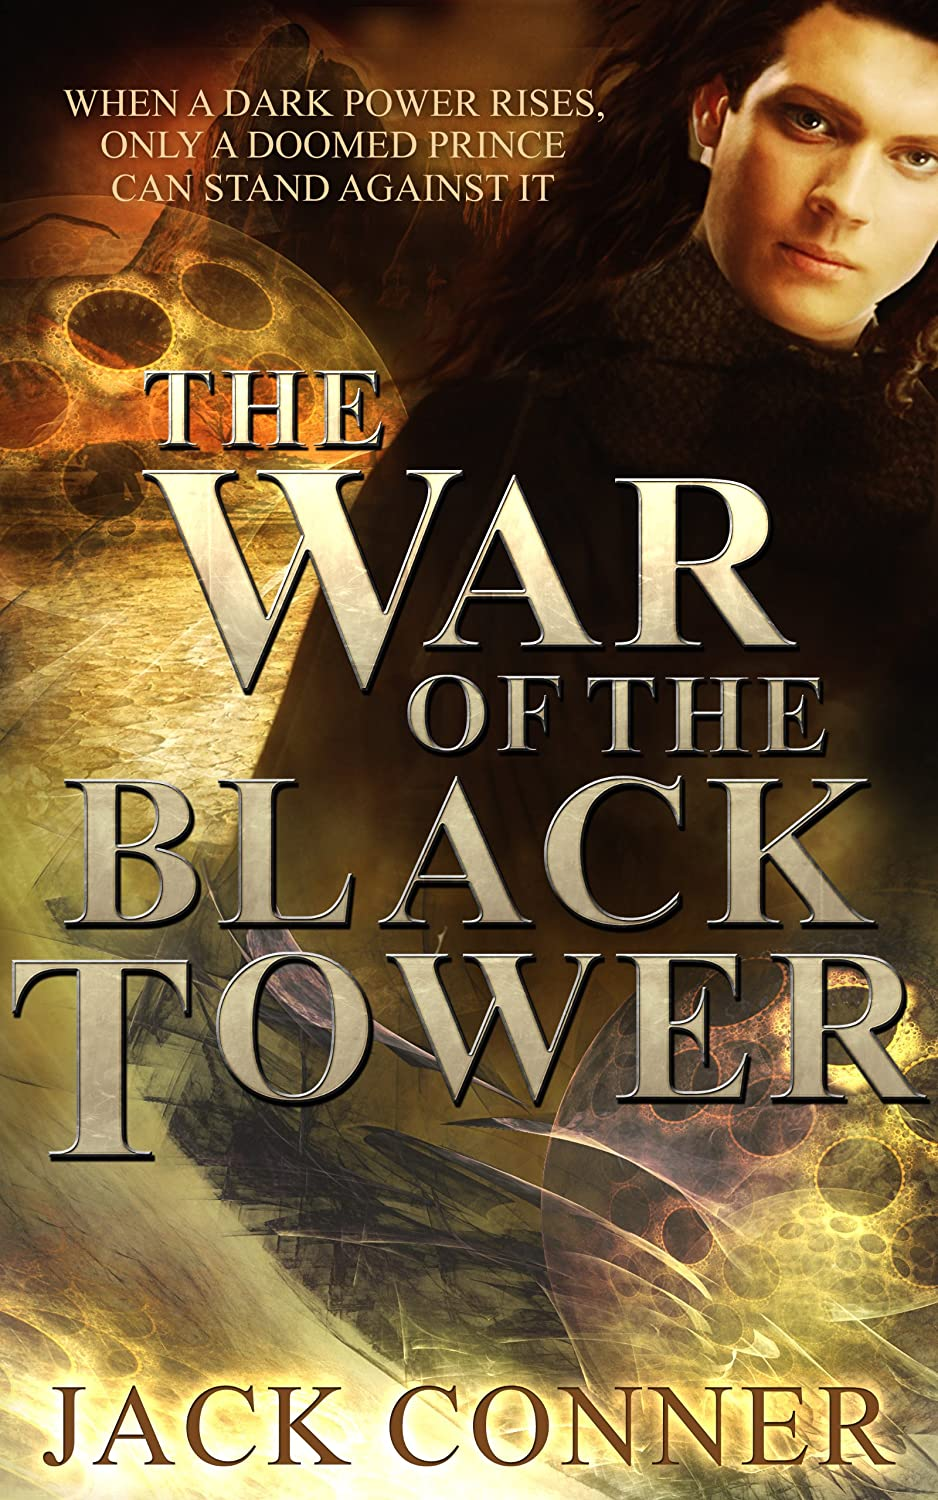 TheWaroftheBlackTower_ebook_Final2